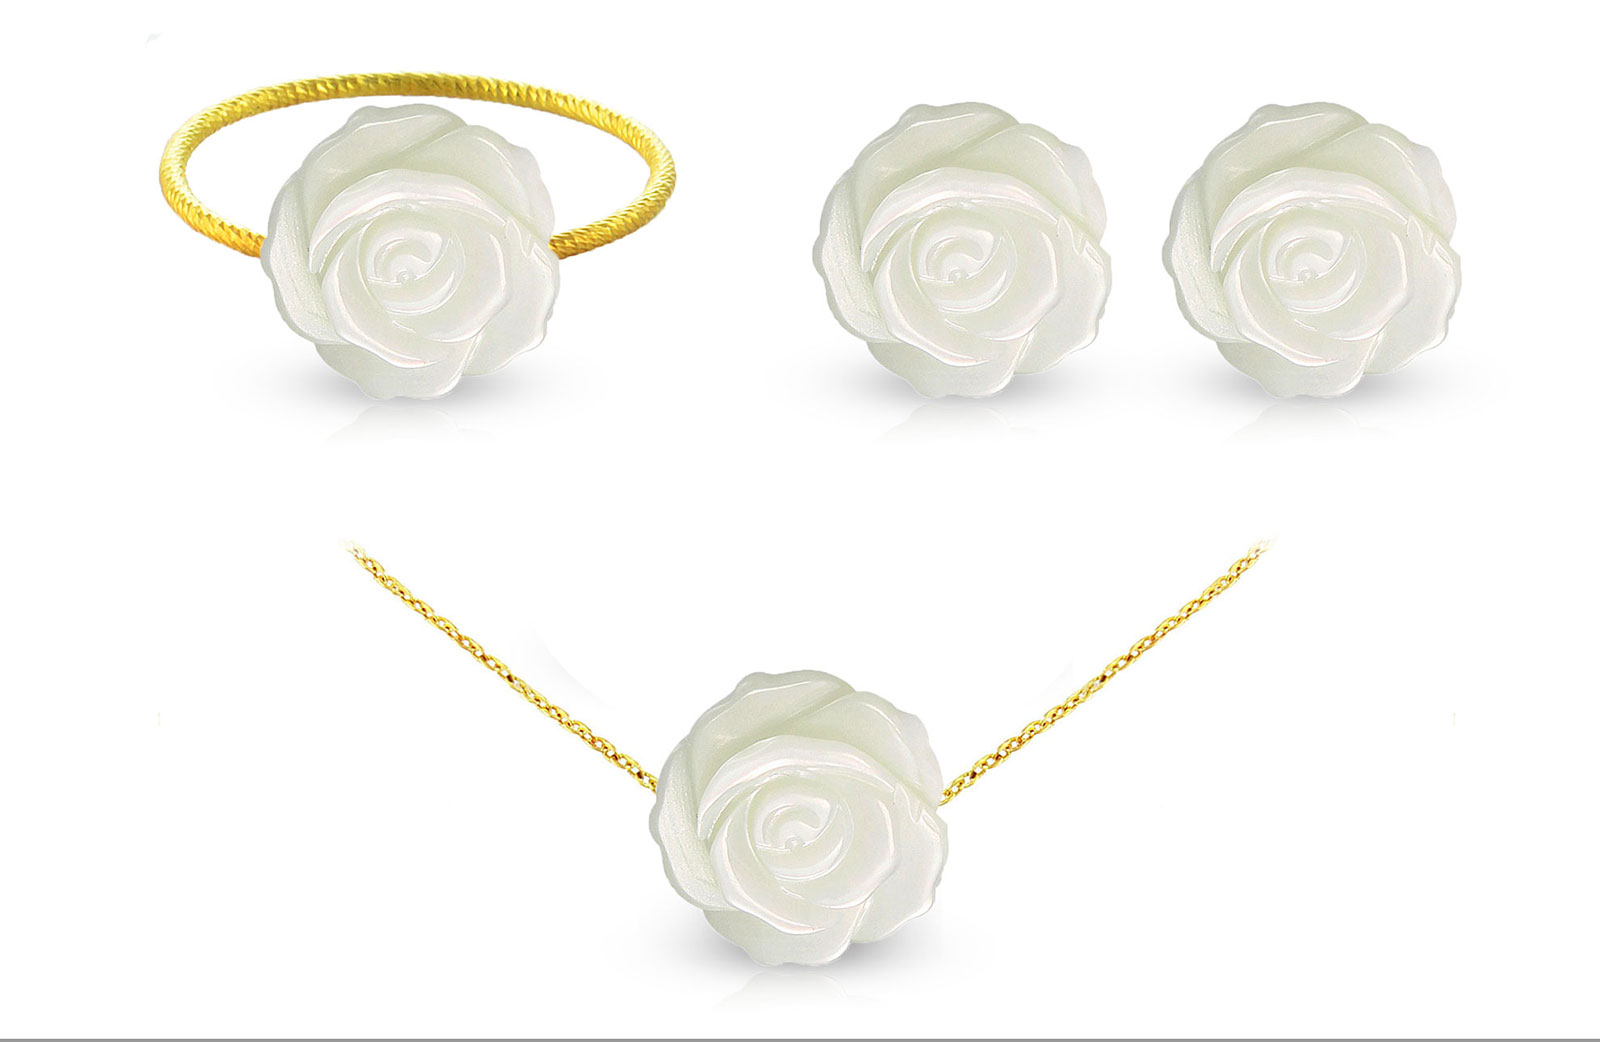 Vera Perla 18k Gold, 12mm Rose Carved Mother of Pearl 3 pcs Jewelry Set